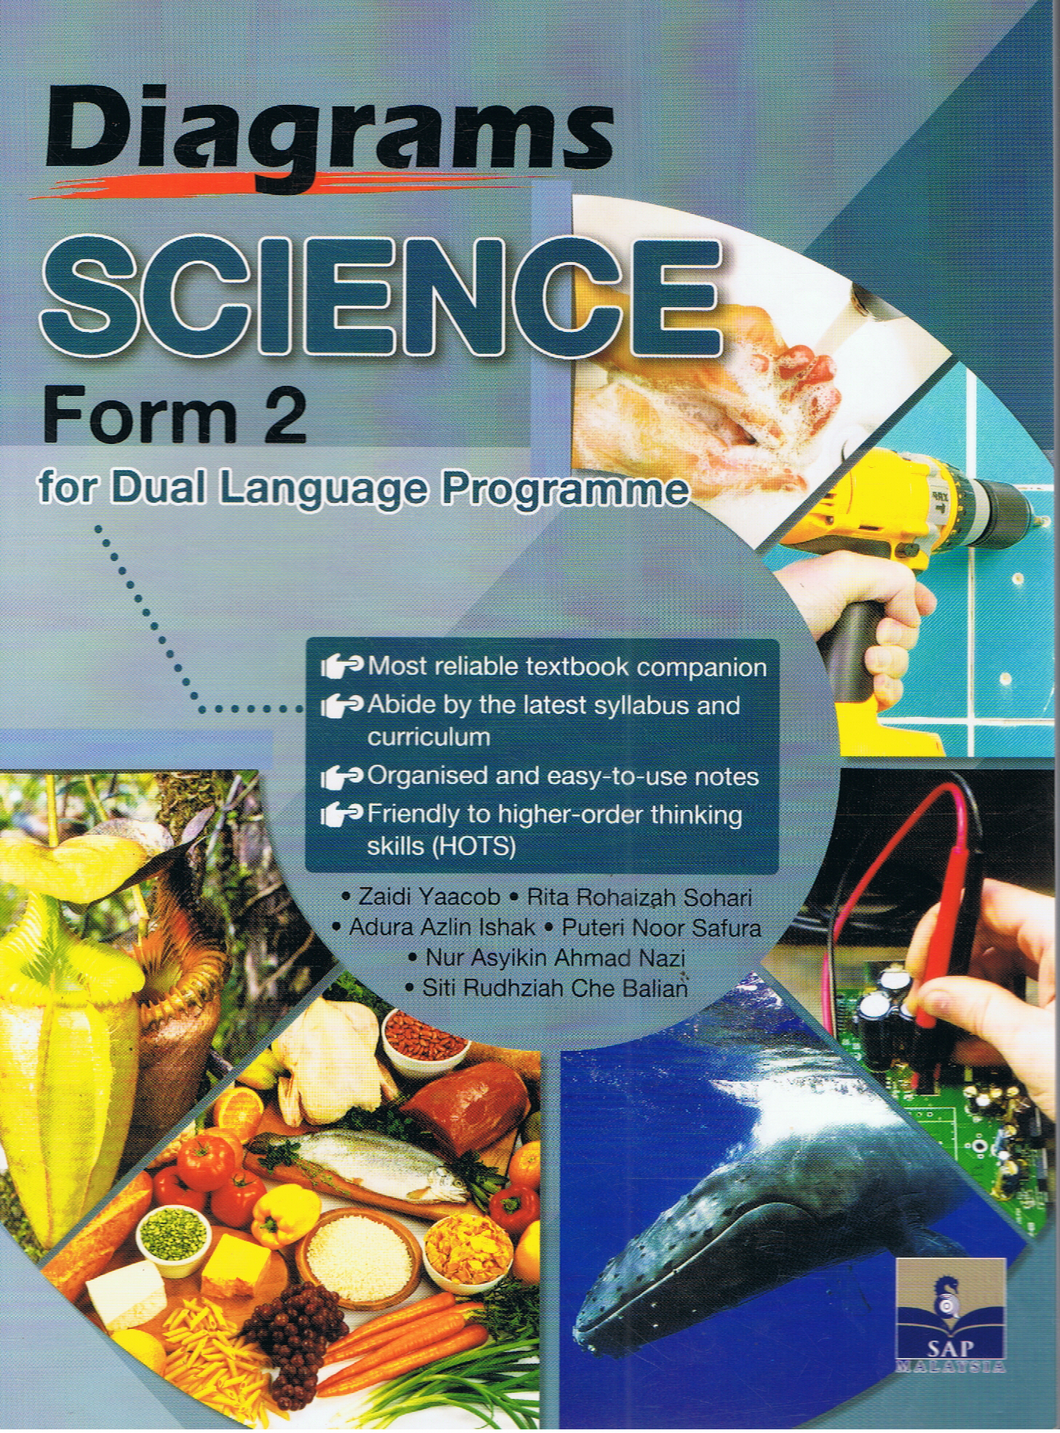 SAP Pendidikan-Diagrams Science Form 2 For Dual Language Programme-9789673216499-BukuDBP.com